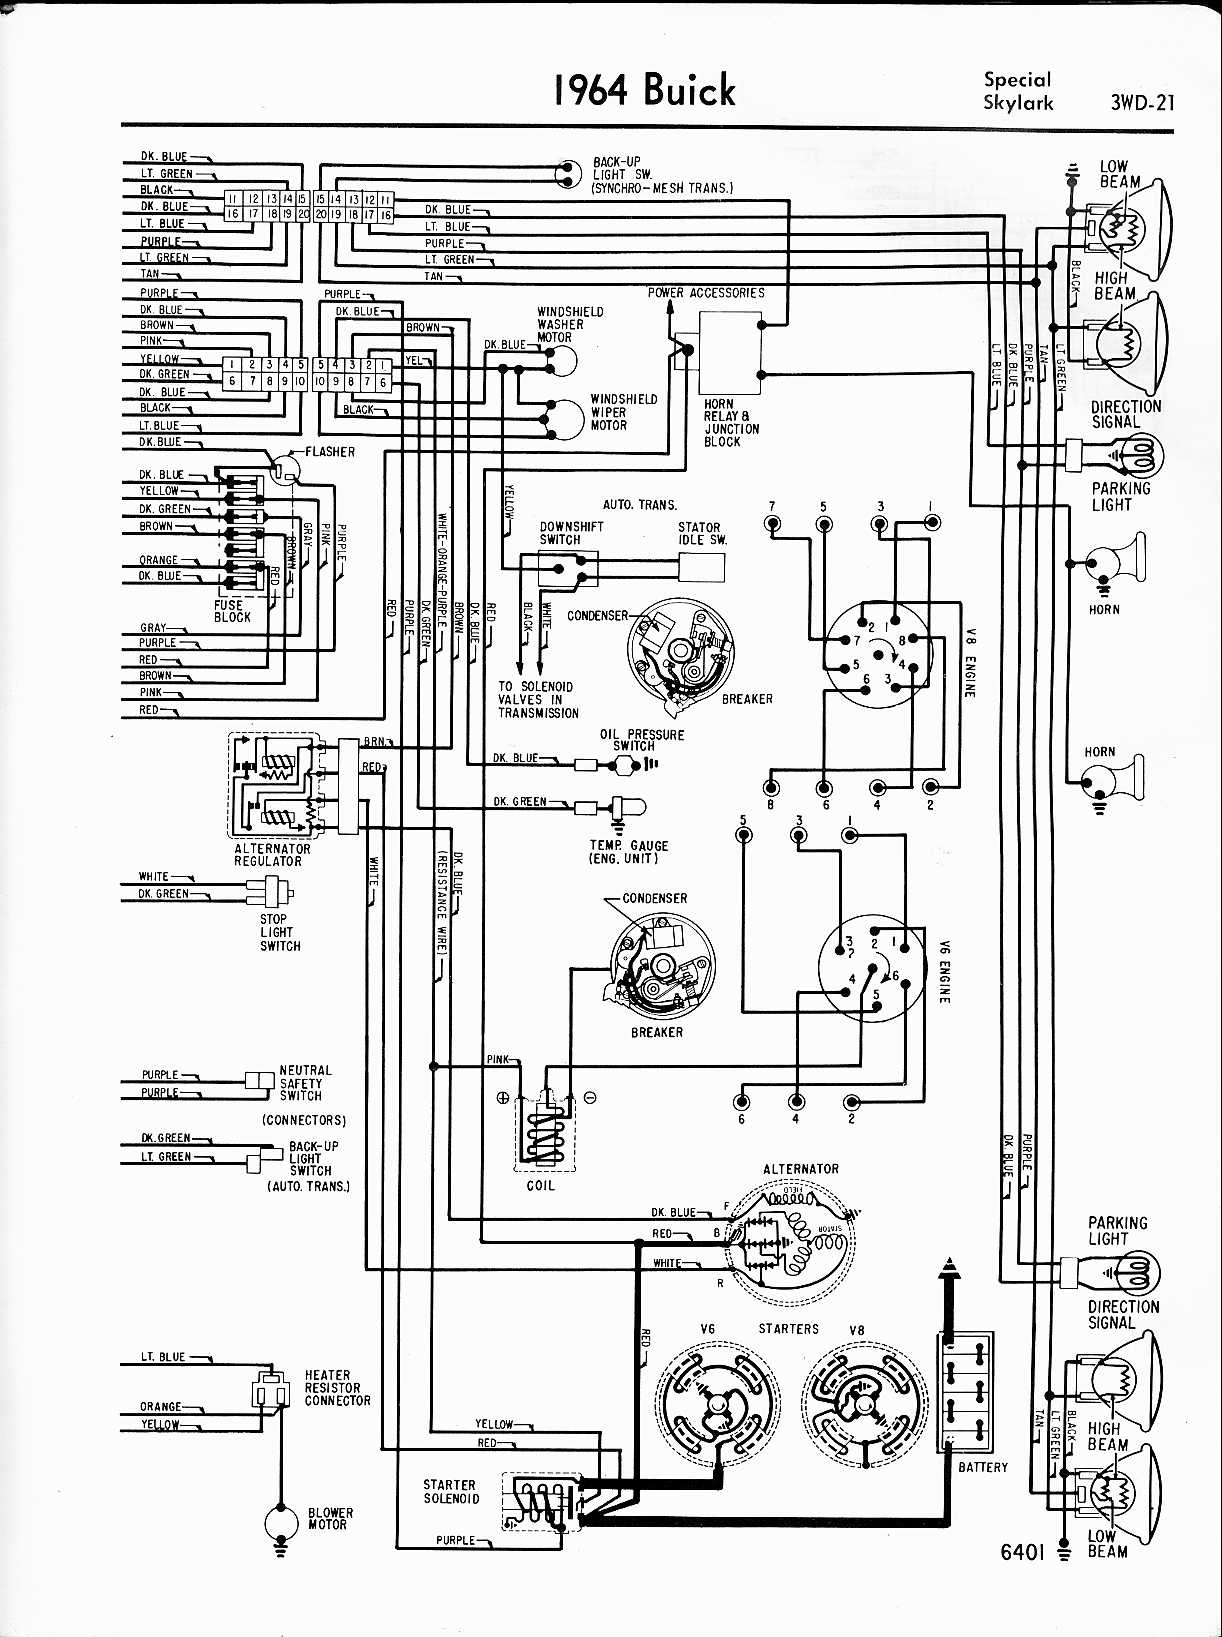 Buick Skyhawk Fuse Box Diagram Archive Of Automotive Wiring 1994 Skylark 1966 Riviera Simple Rh David Huggett Co Uk 1991 1990